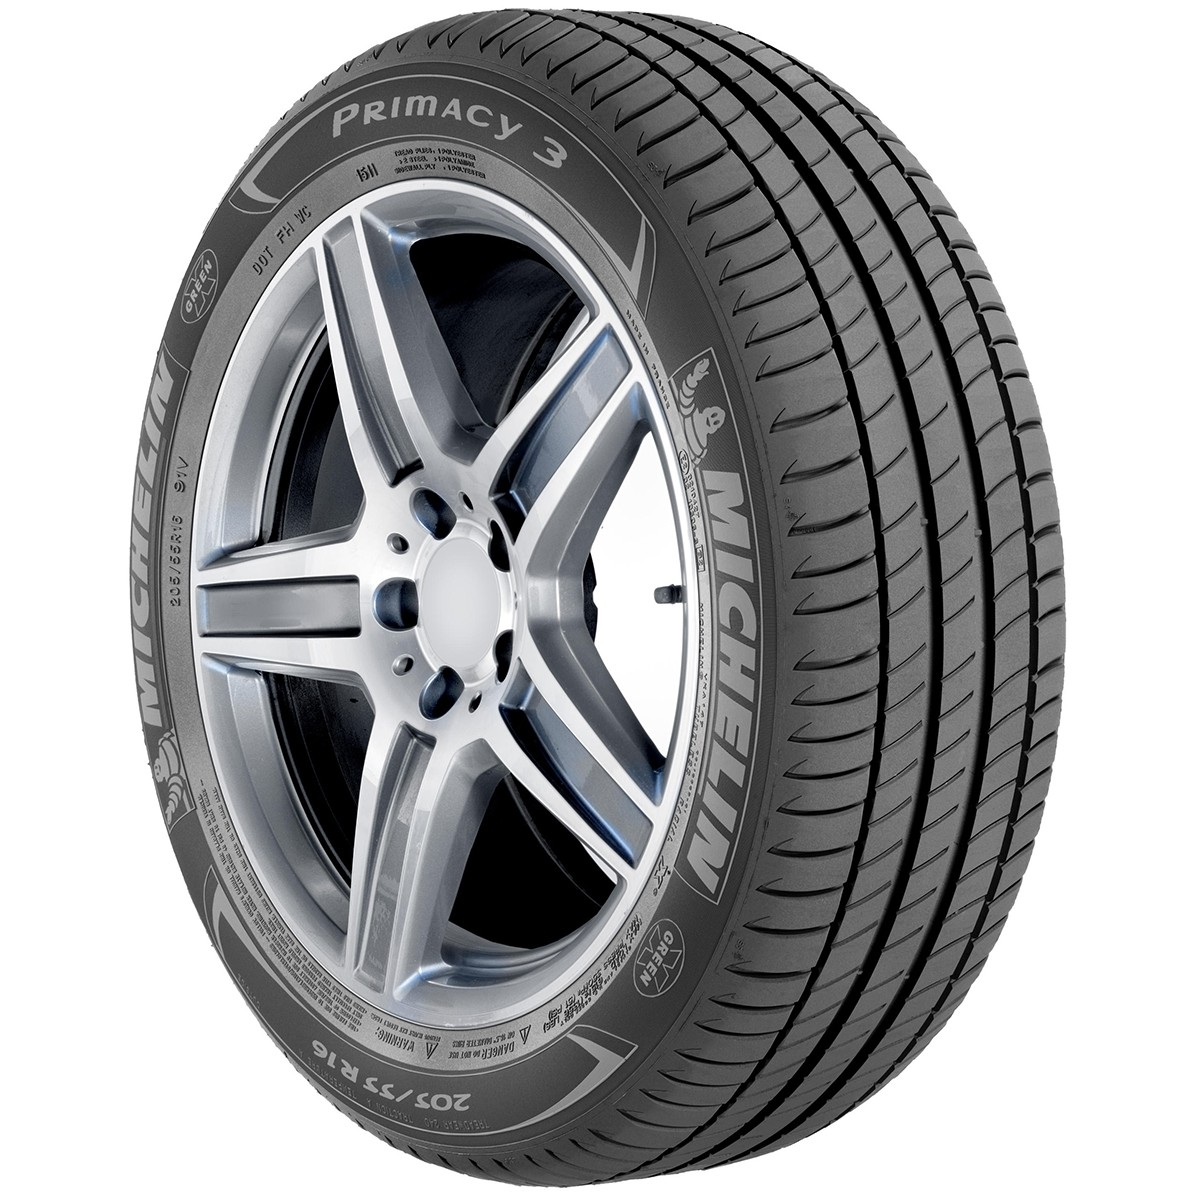 215/60 R17 [96] V PRIMACY 3 - MICHELIN